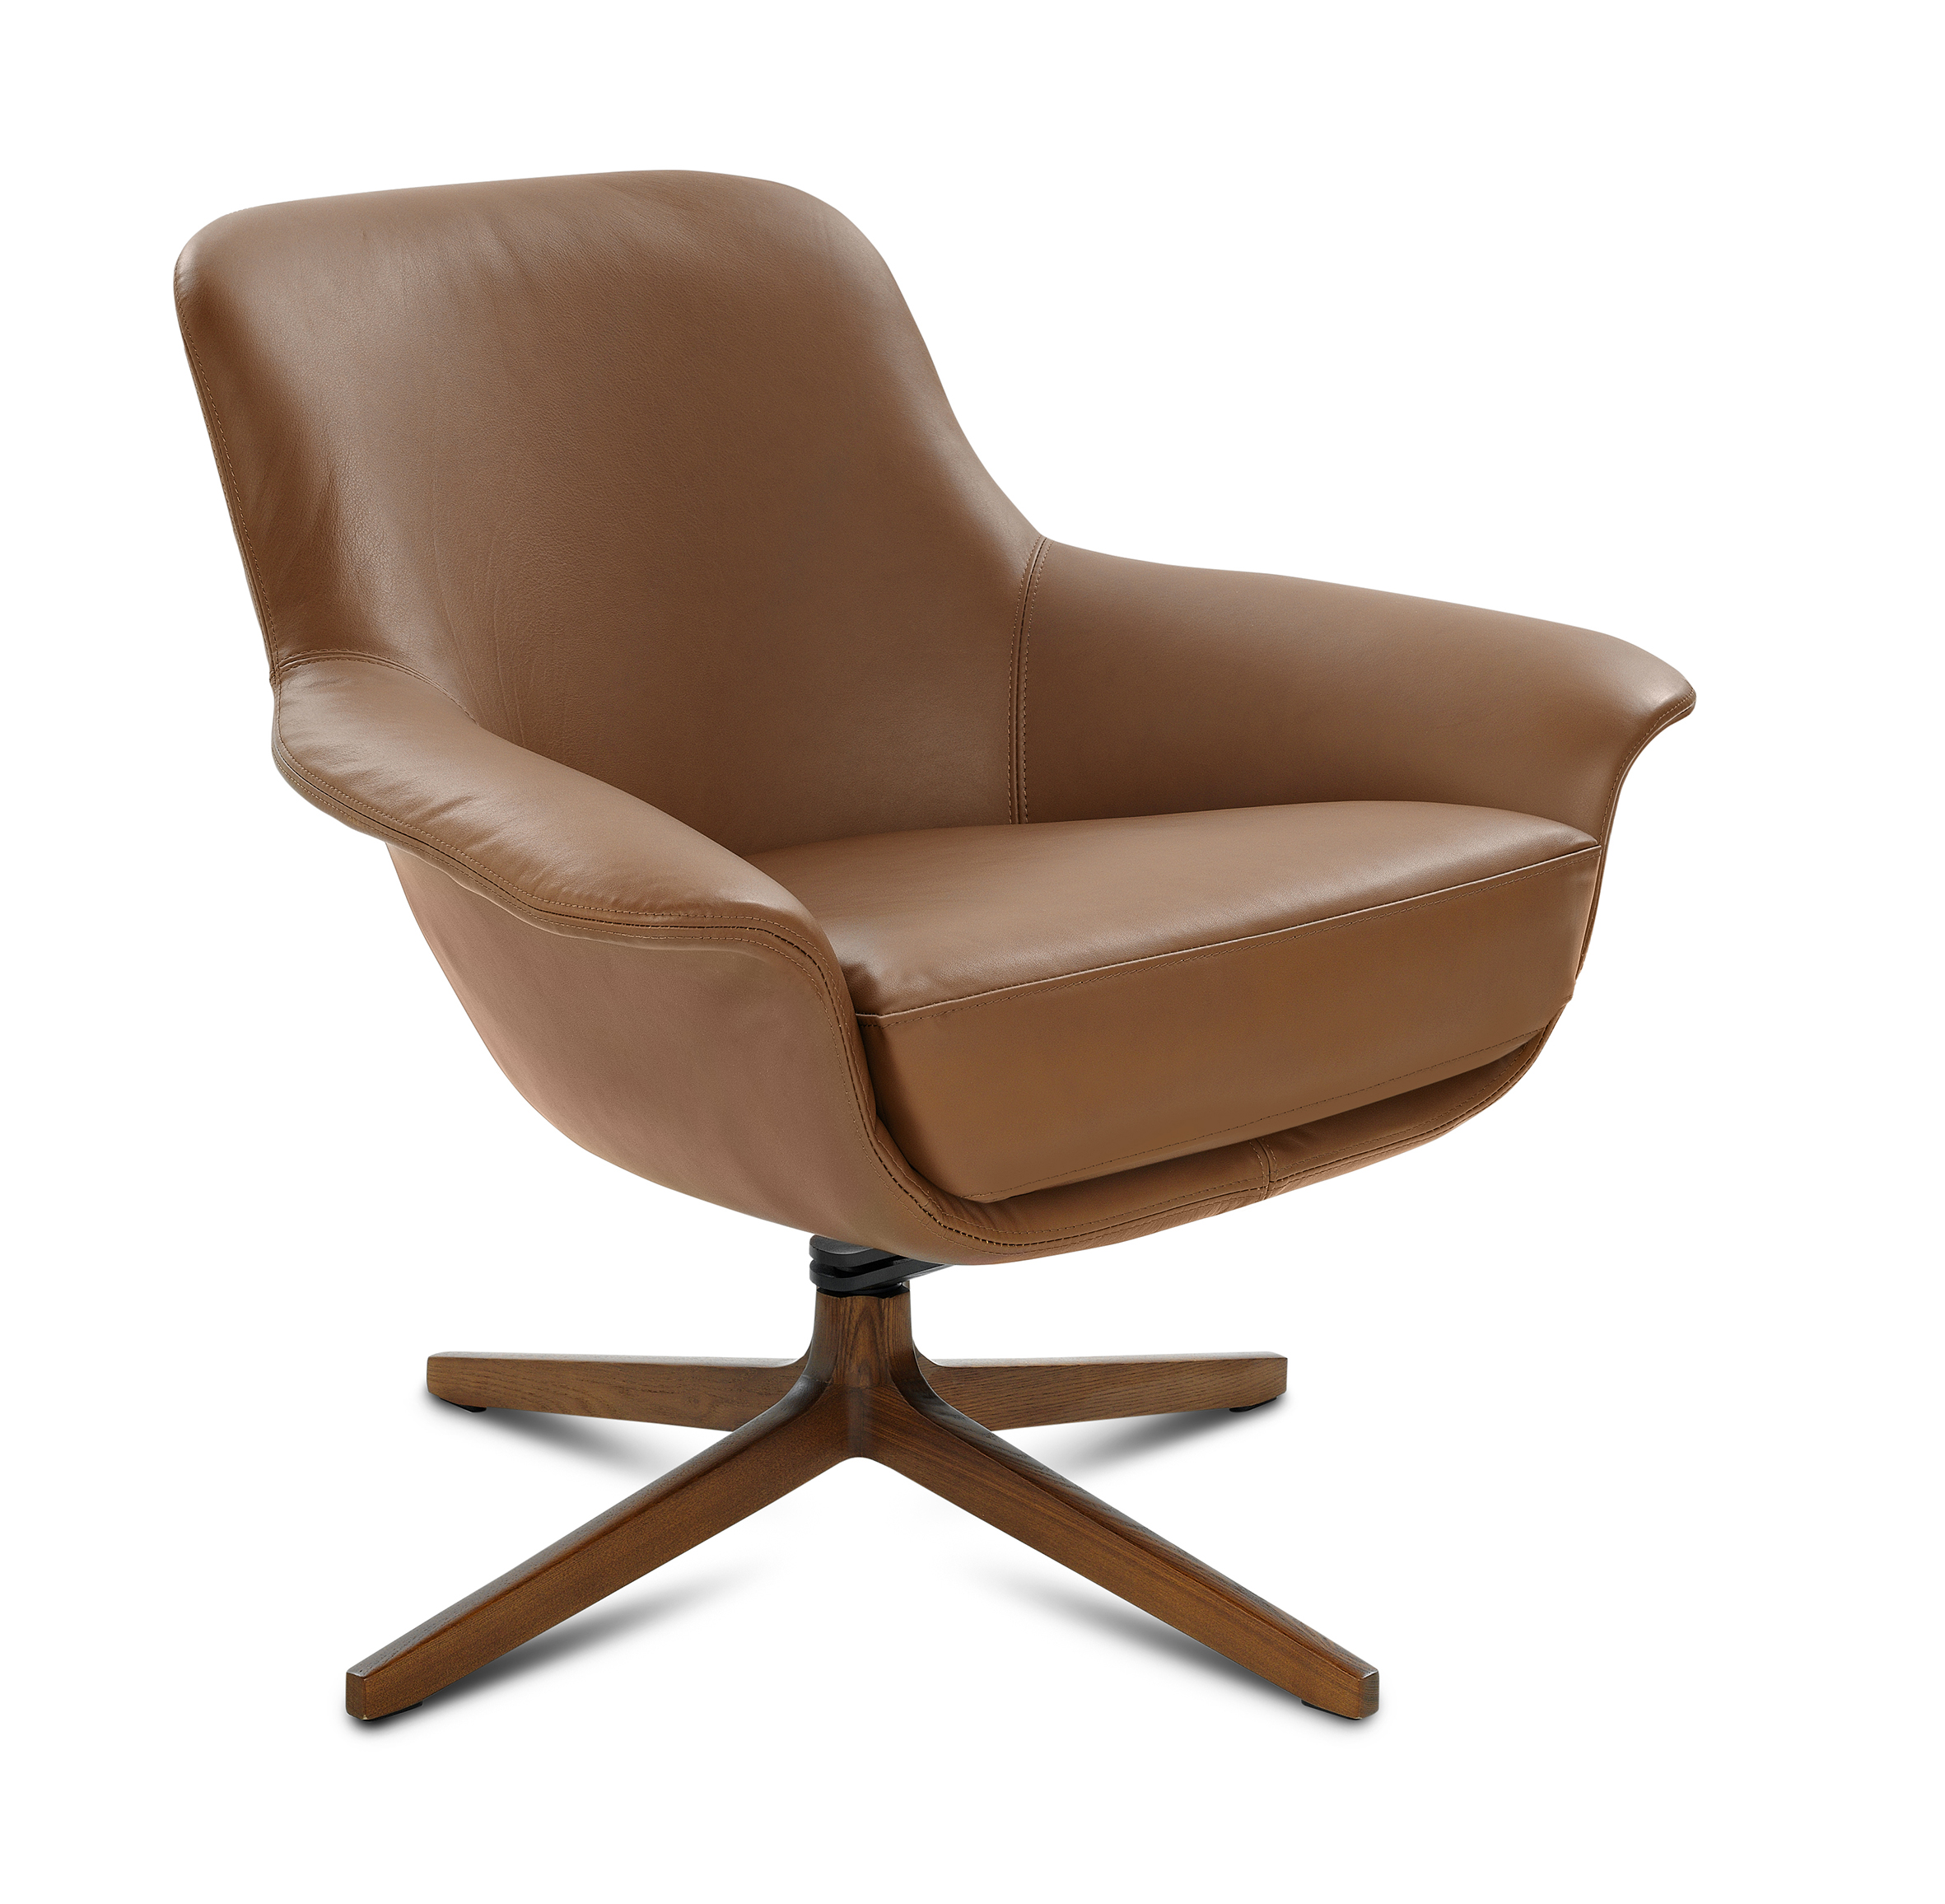 Seymour low back swivel chair by king furniture for King living furniture lounge